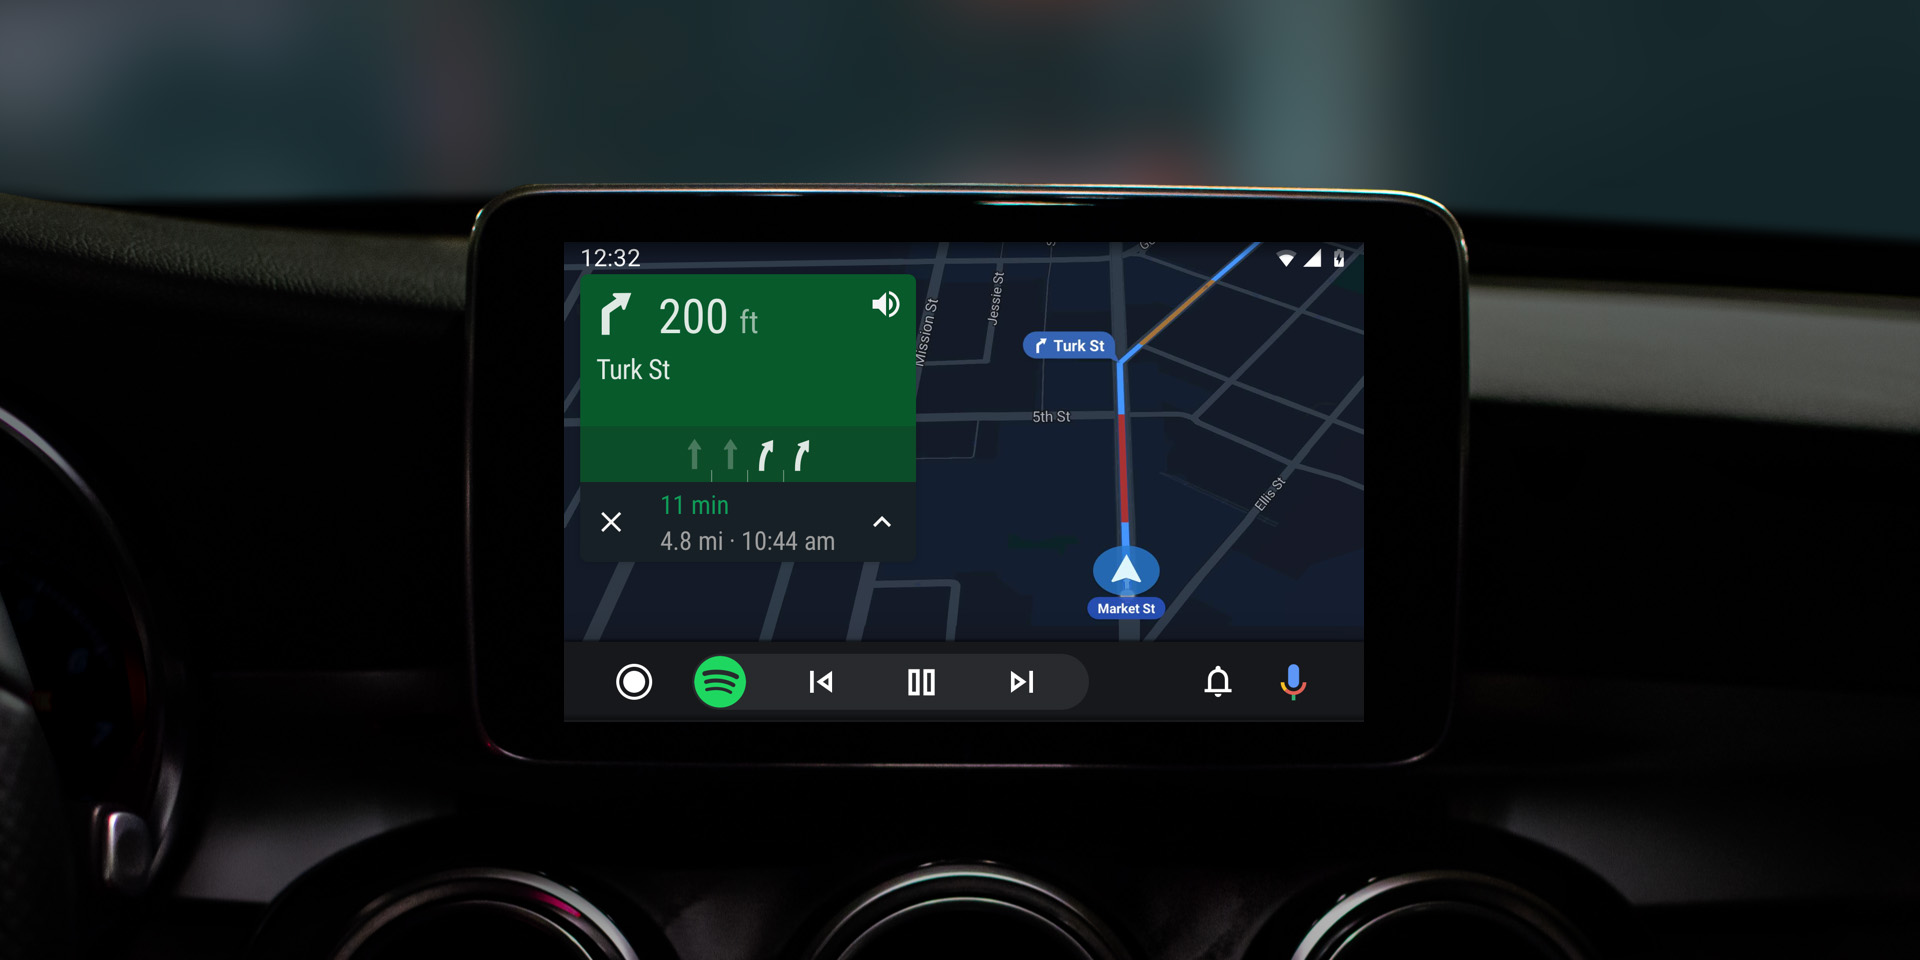 Android Auto redesign with dark theme begins rolling out